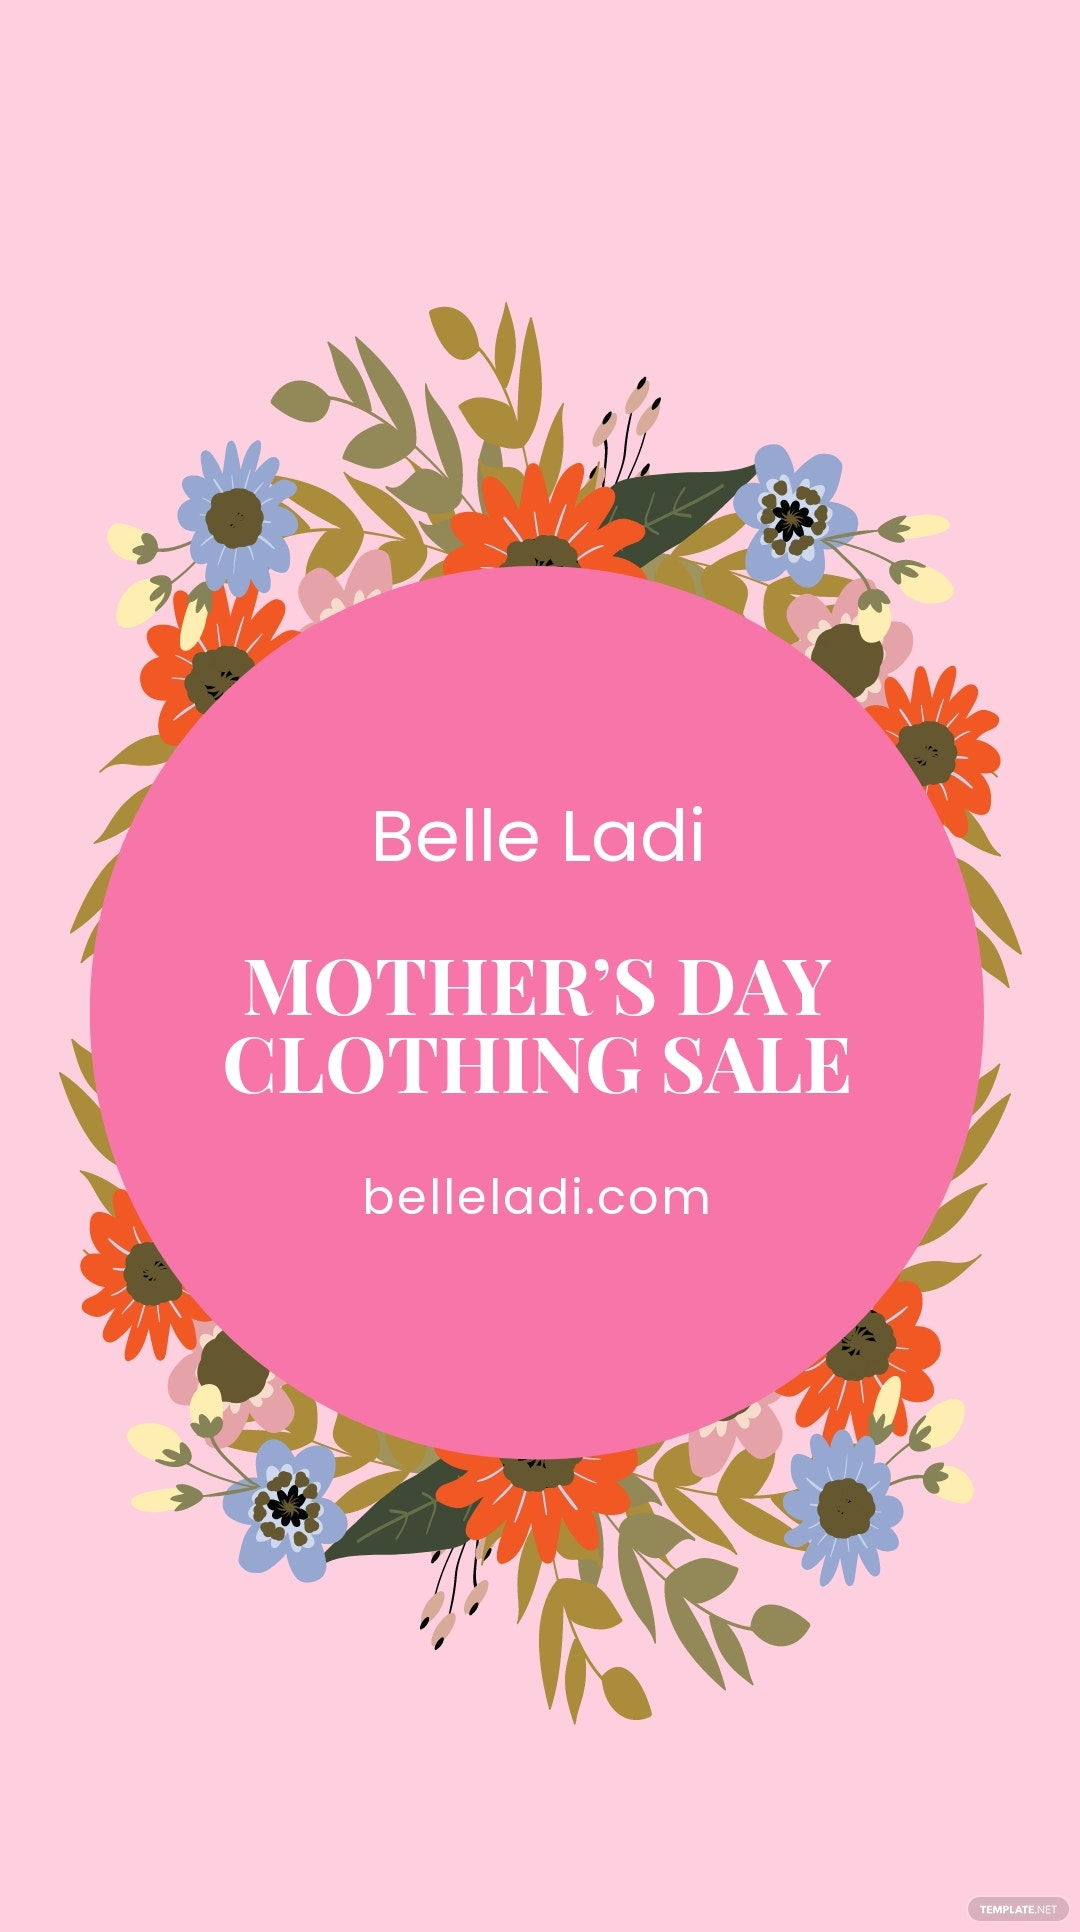 FREE Mother's Day Sale Instagram Story Template